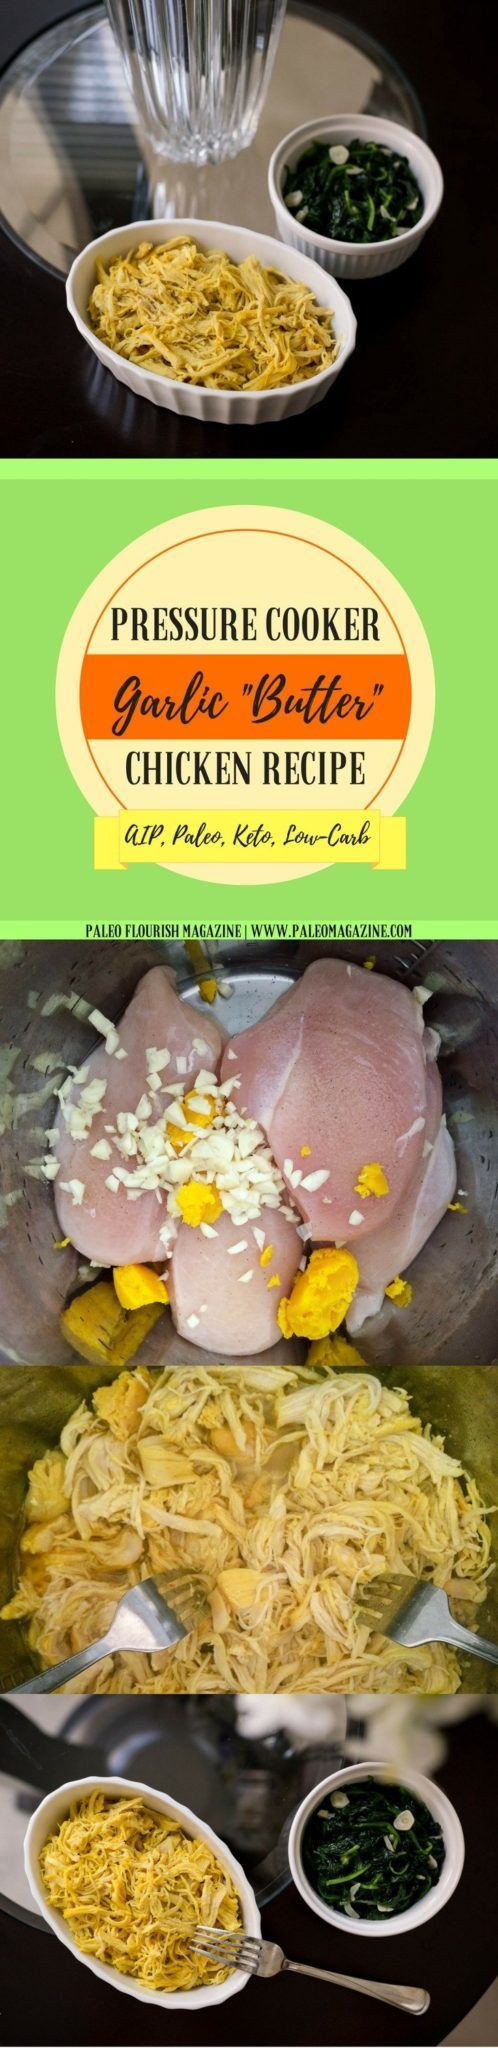 "Pinterest Image for Pressure Cooker Garlic ""Butter"" Chicken Recipe [AIP, Paleo, Keto, Low-Carb] #paleo #recipes #glutenfree https://paleomagazine.com/keto-pressure-cooker-garlic-butter-chicken-recipe"